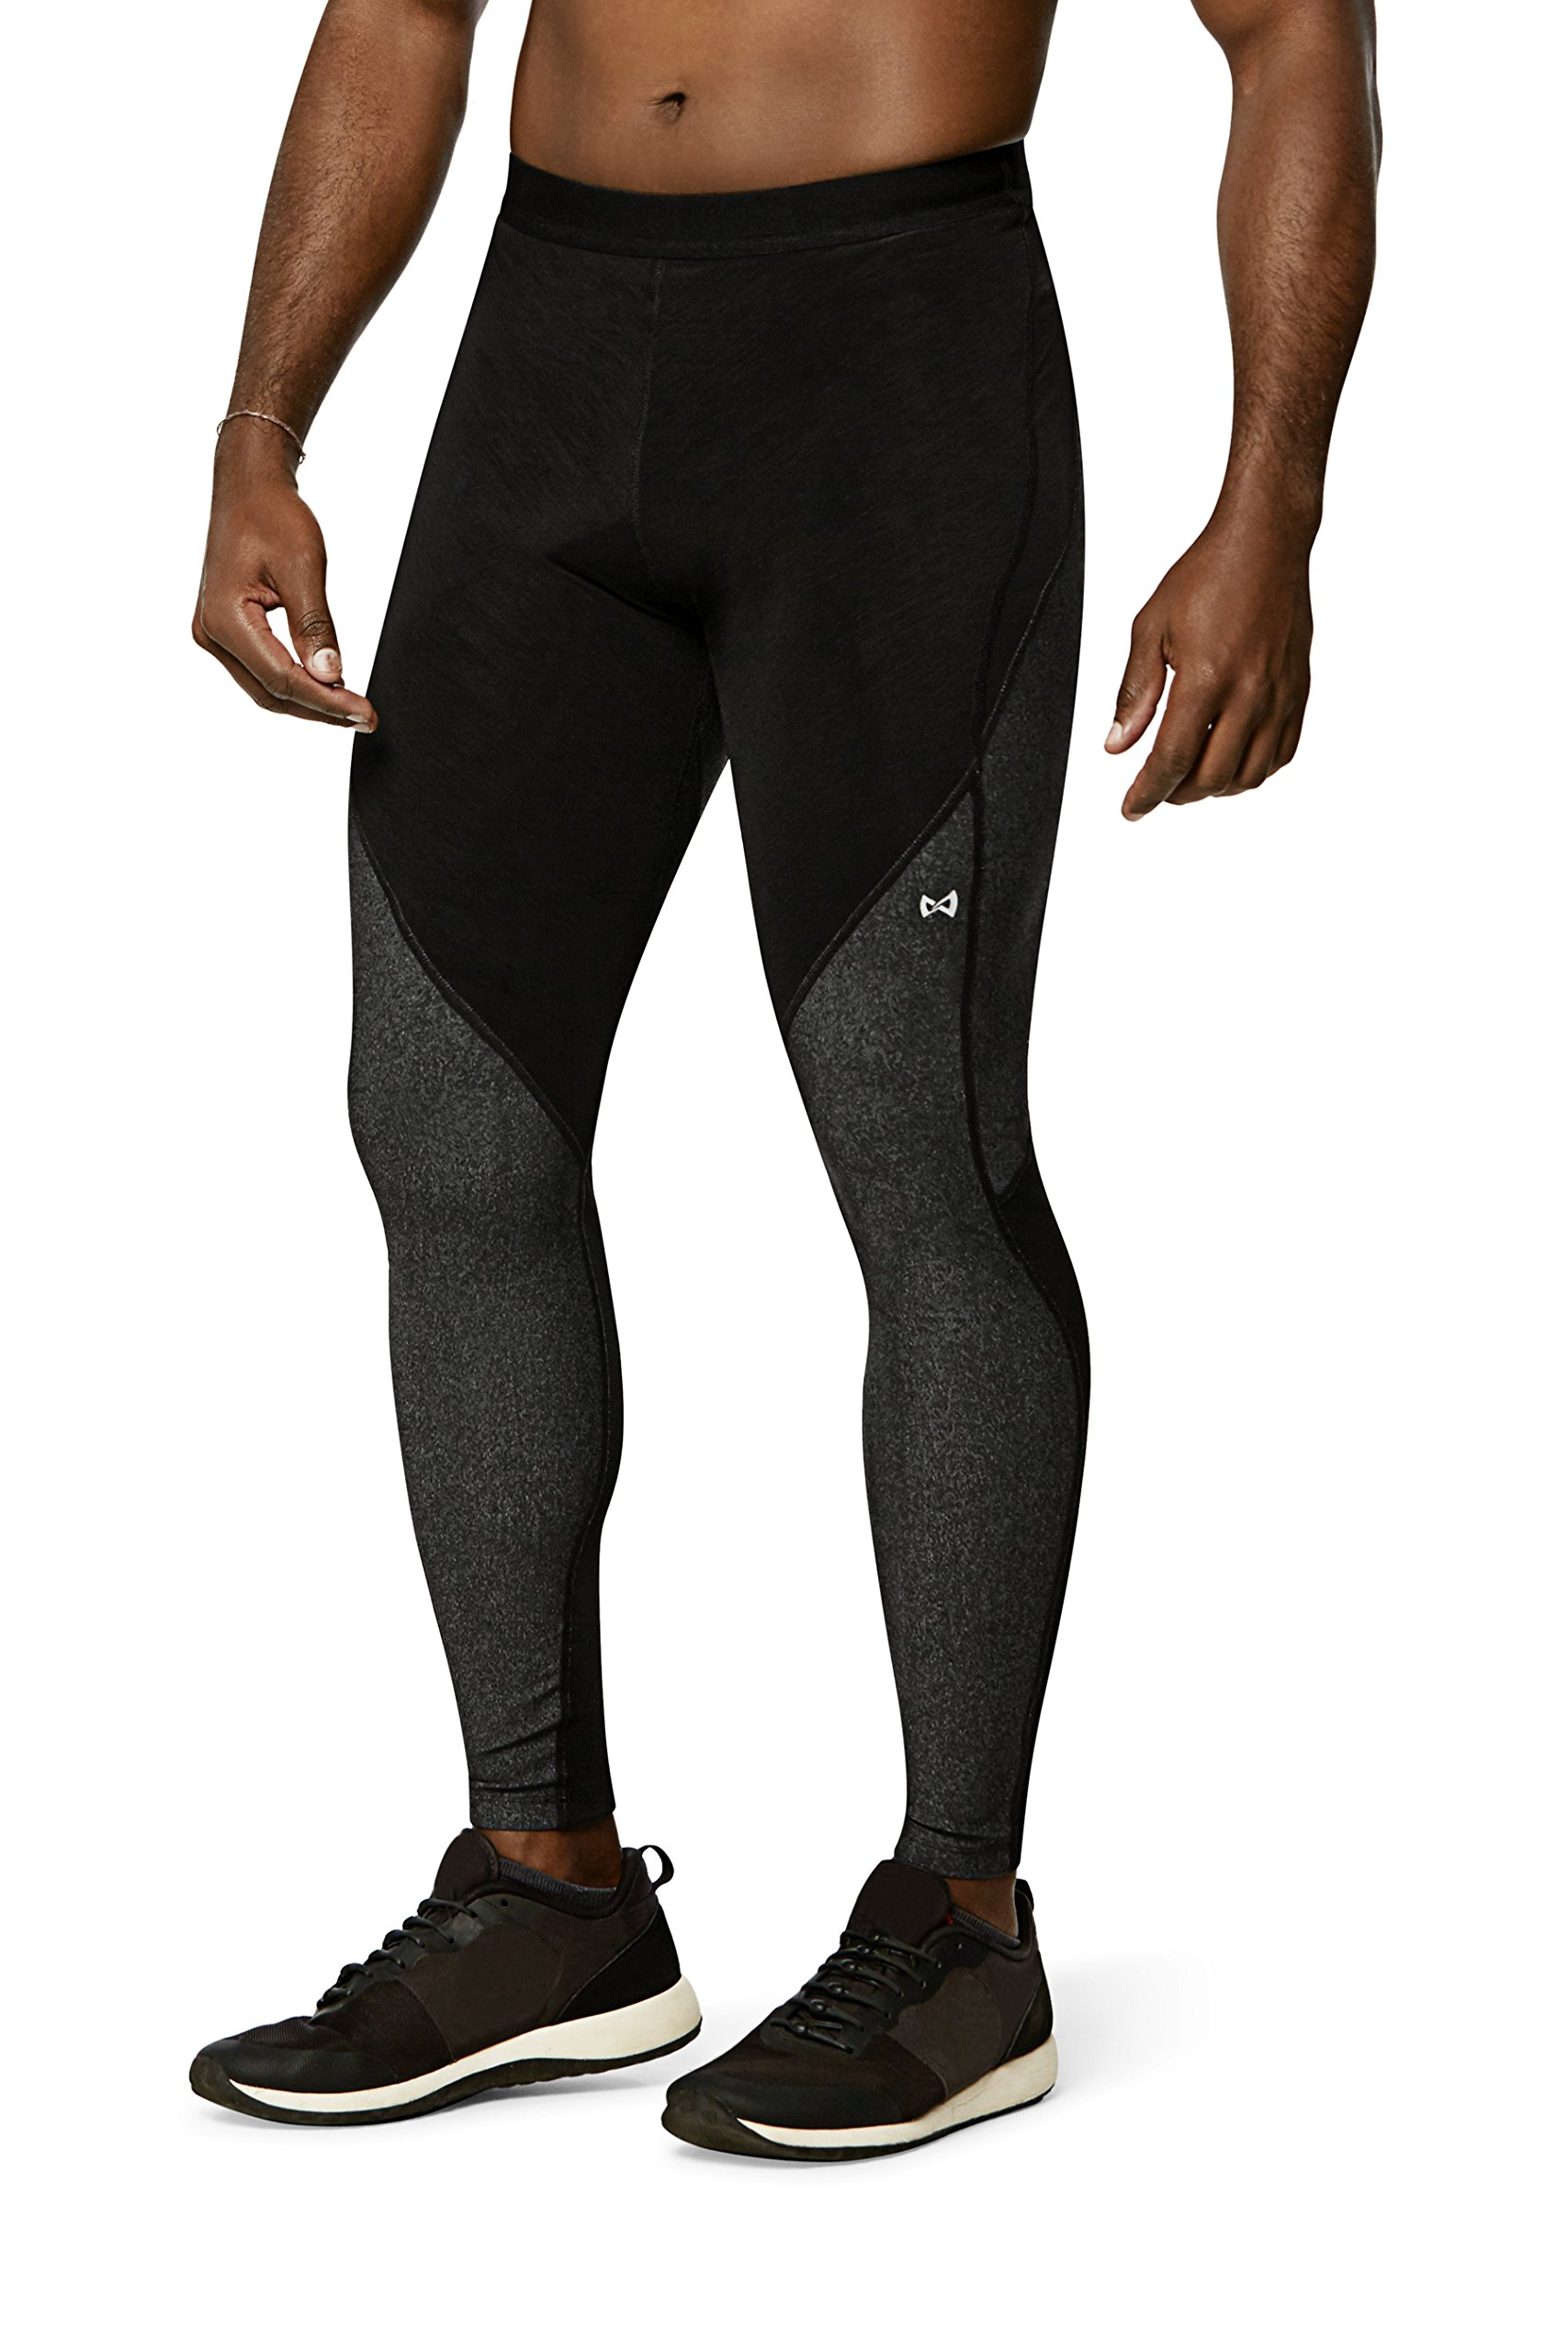 Physiclo Pro Resistance Women's Compression Full-Length Tight Training Pants, Grey/Black, Small